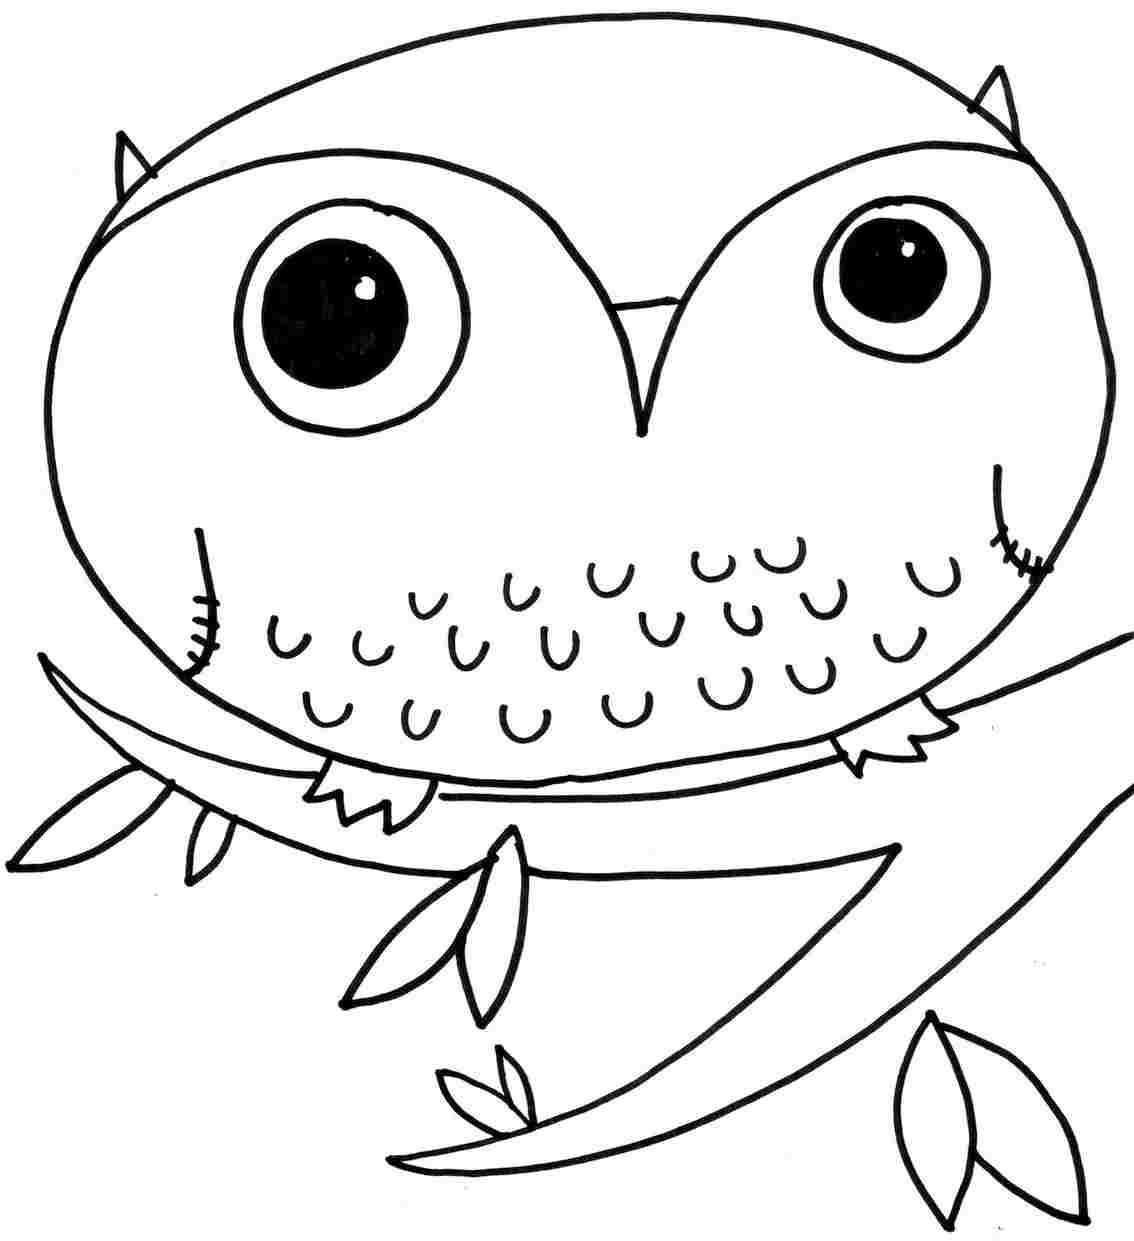 Owl coloring pages free - Owl Coloring Pages Printable Free Printable Owl Coloring Pages Printable Free Free Owl Coloring